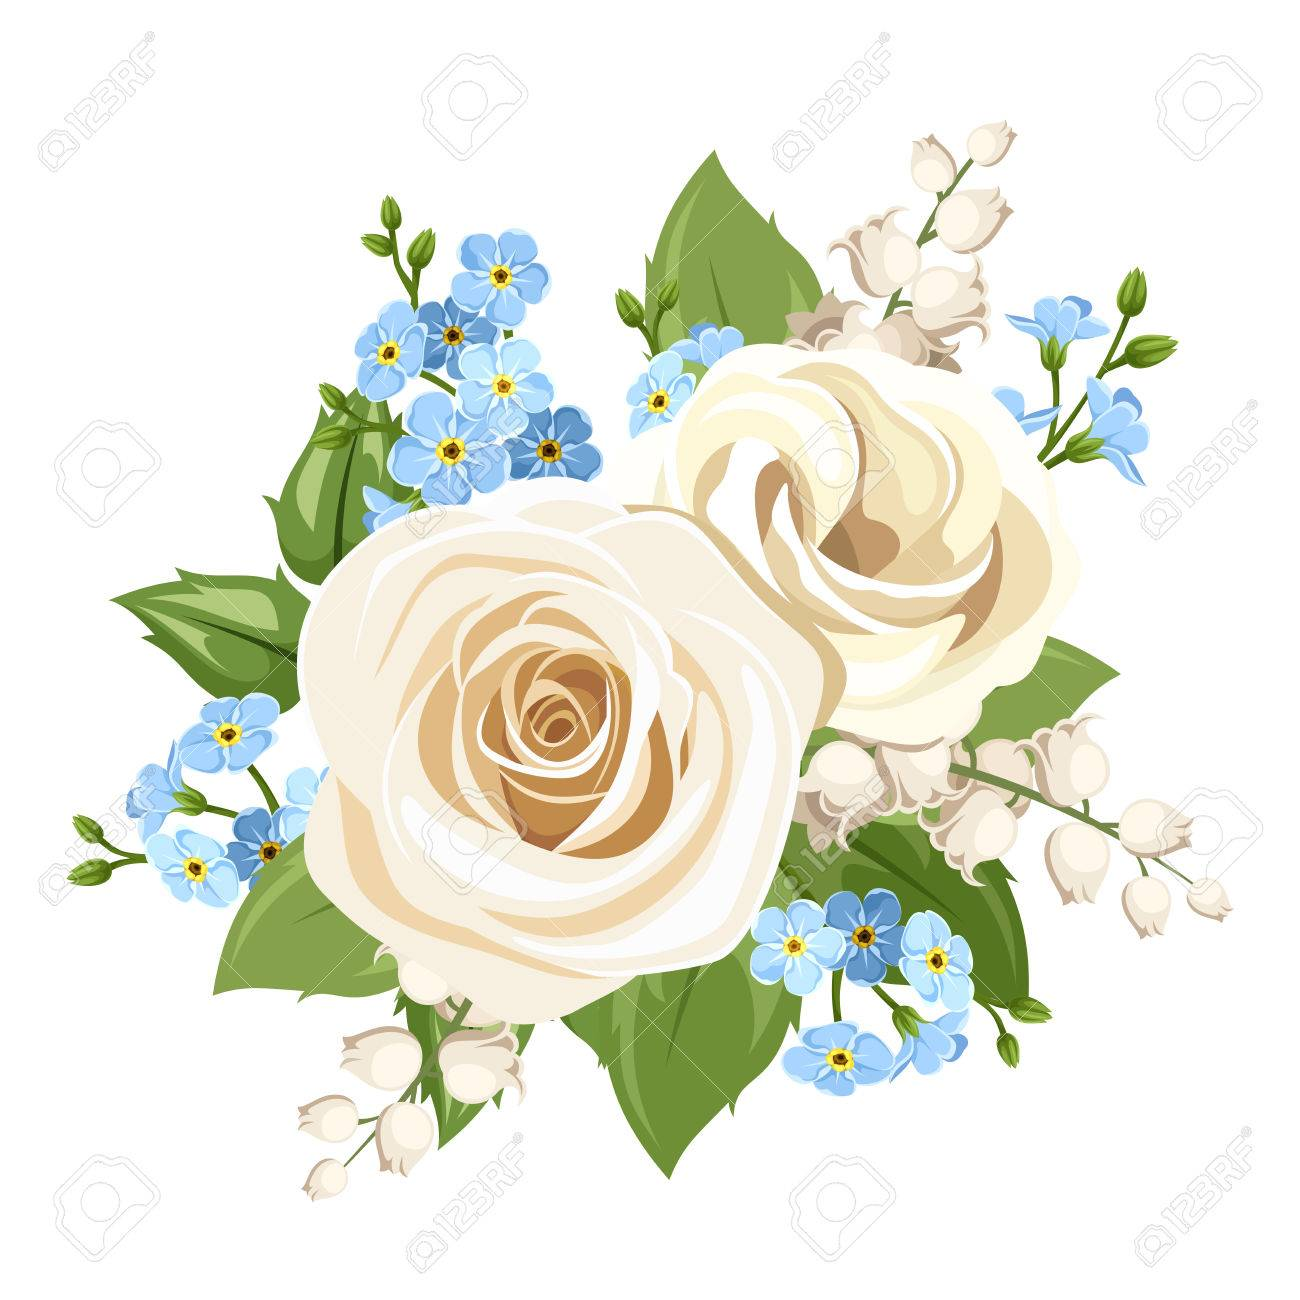 Vector - Vector vintage white and blue roses, lisianthuses, lily of the  valley and forget-me-not flowers isolated on a white background.